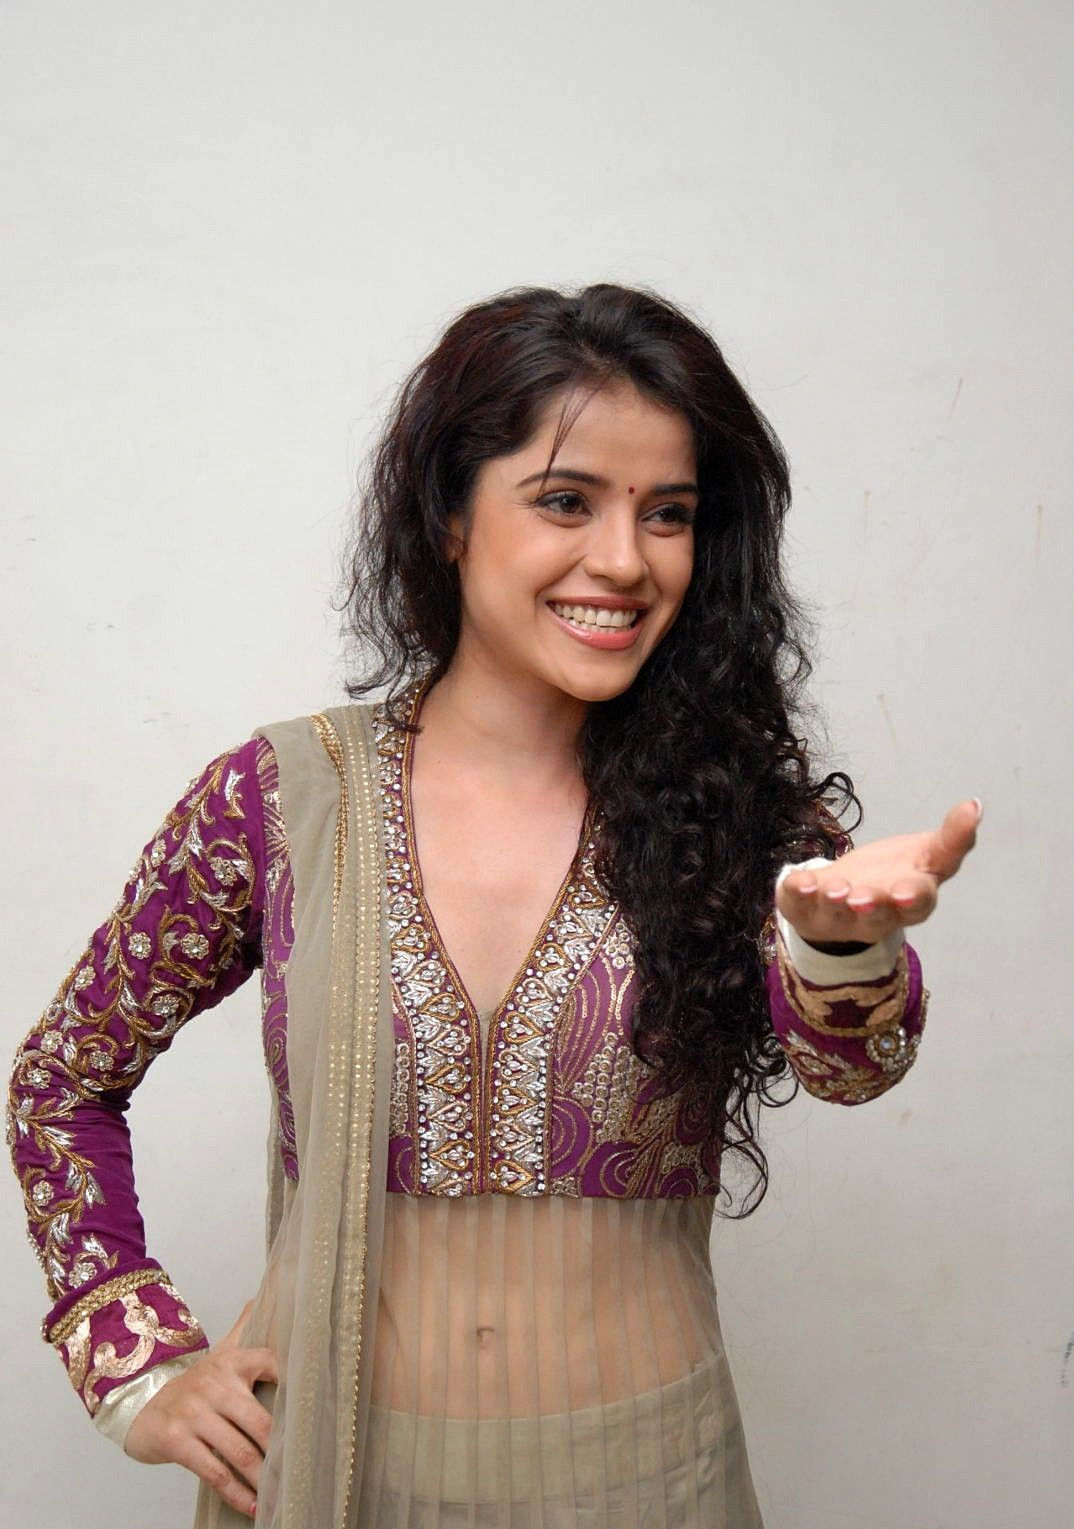 Piaa bajpai transparent gahgra choli spicy innocent beauty beautiful pics